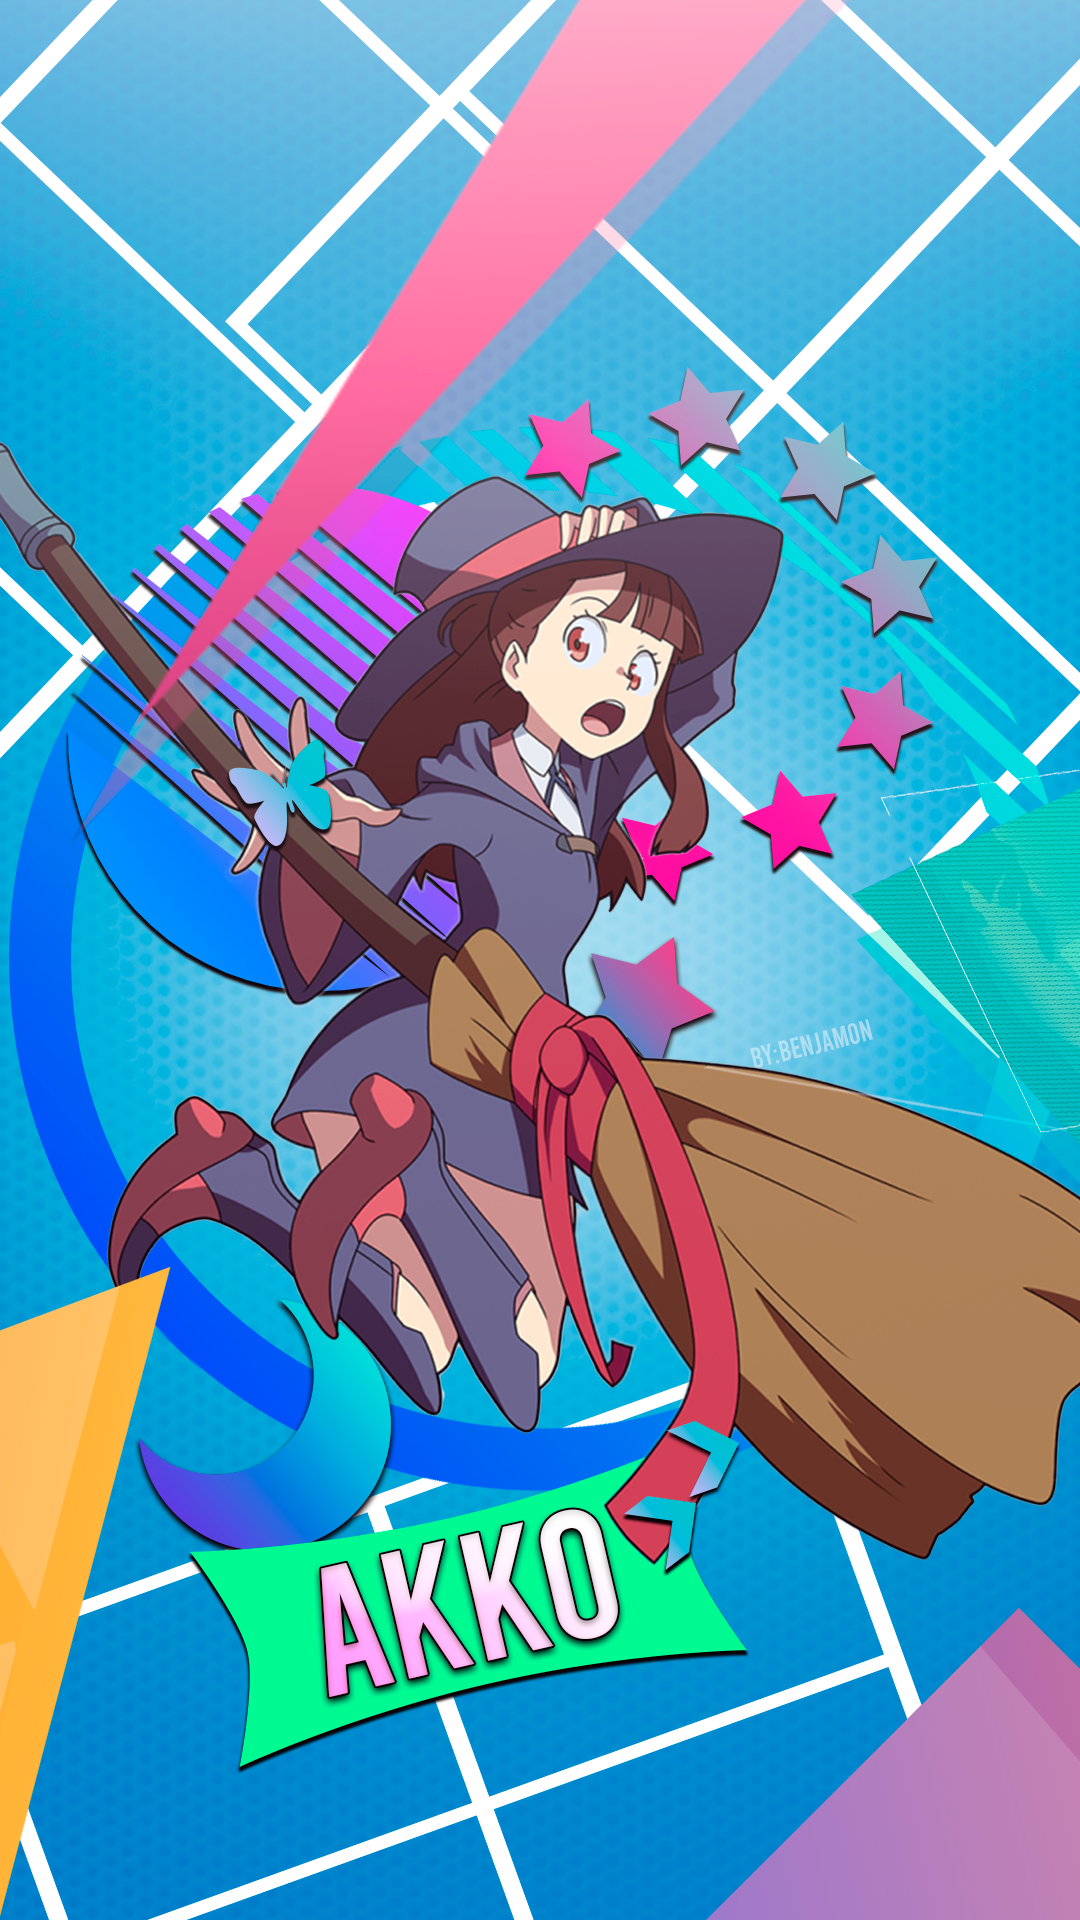 Anime Girls Little Witch Academia Anime Broom Witch Hat Brunette Witch 1080x1920